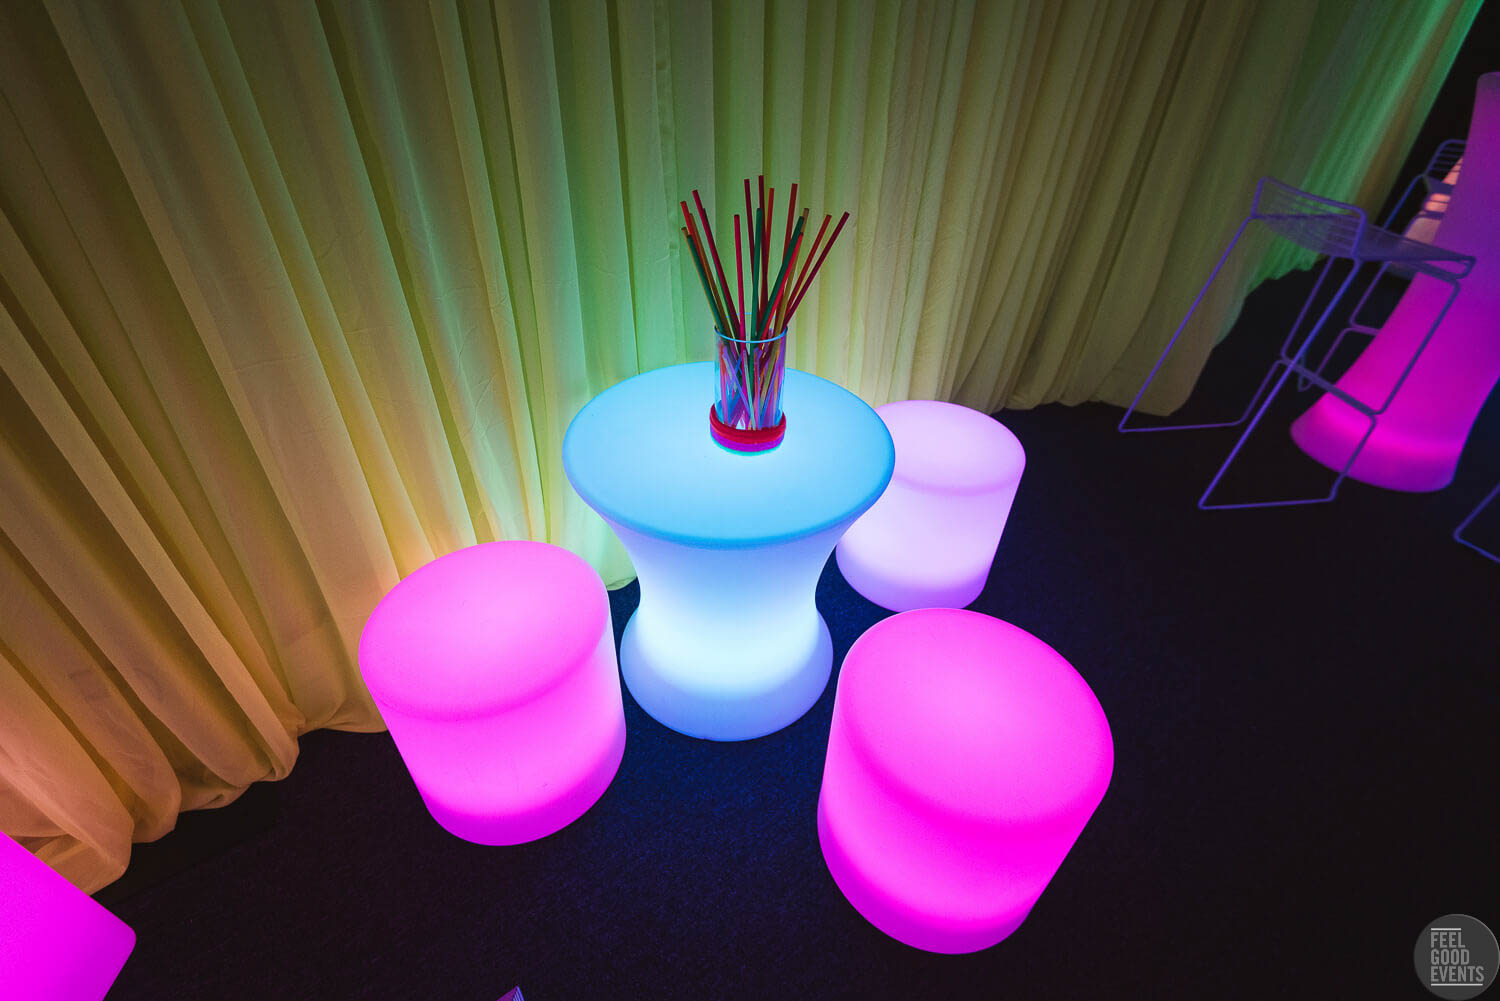 Illuminated Stools and Table for Hire Melbourne in Glowing Centerpiece